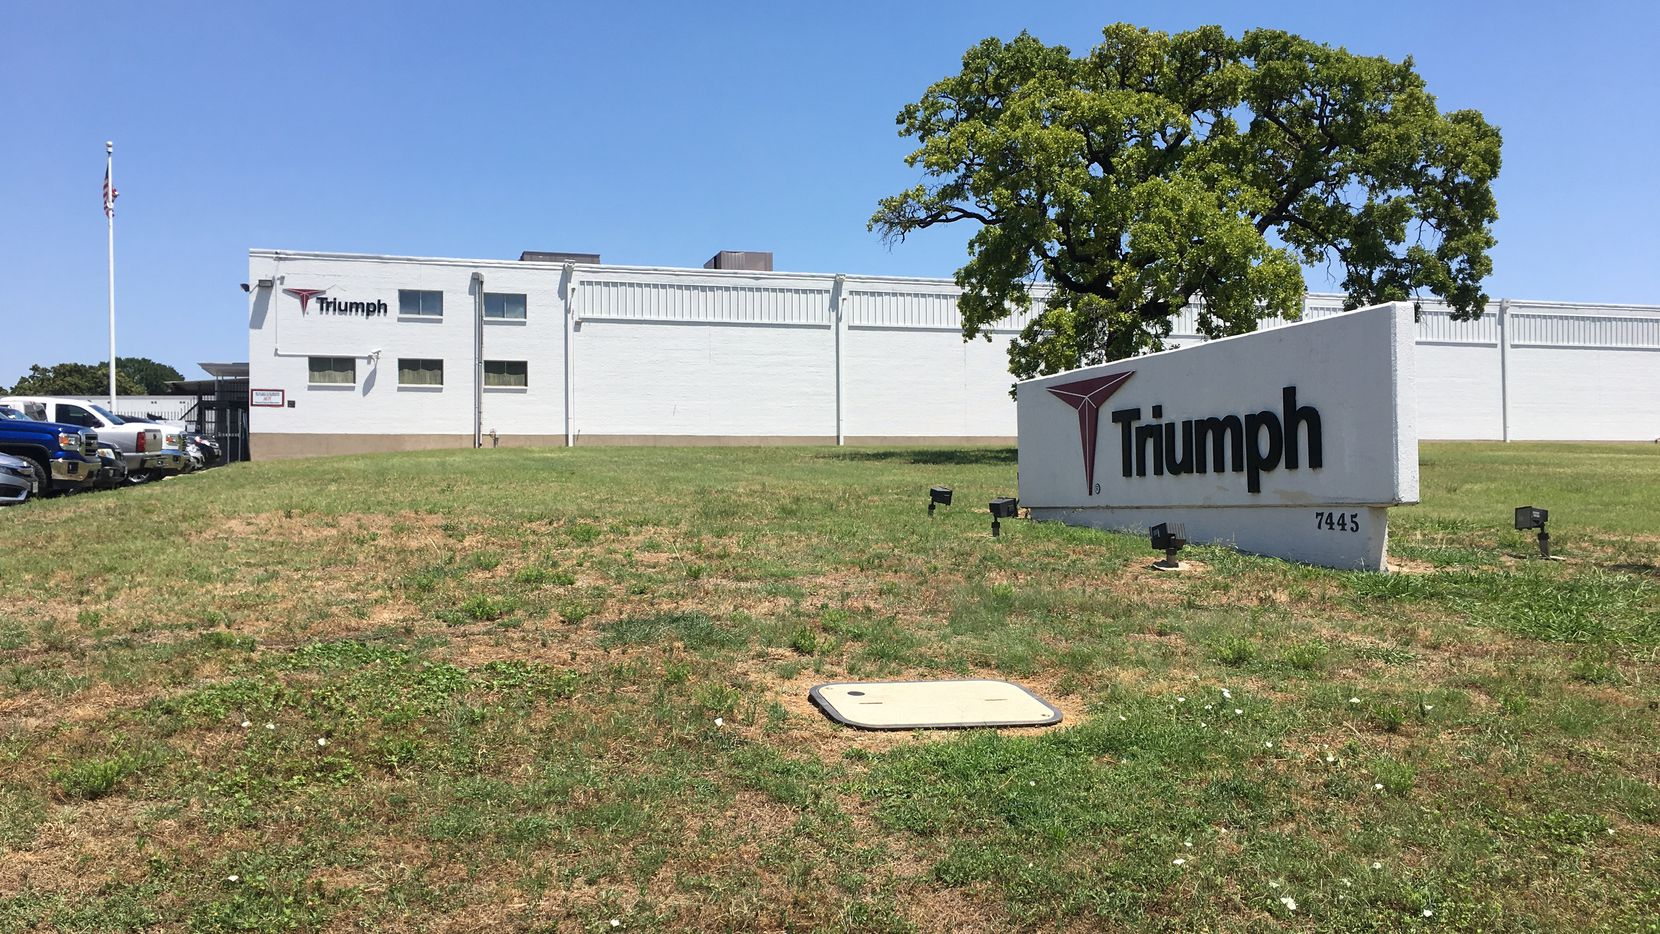 Triumph Group has had some major changes in the past few years, including the selling of a Fort Worth facility to a private equity firm in 2019.